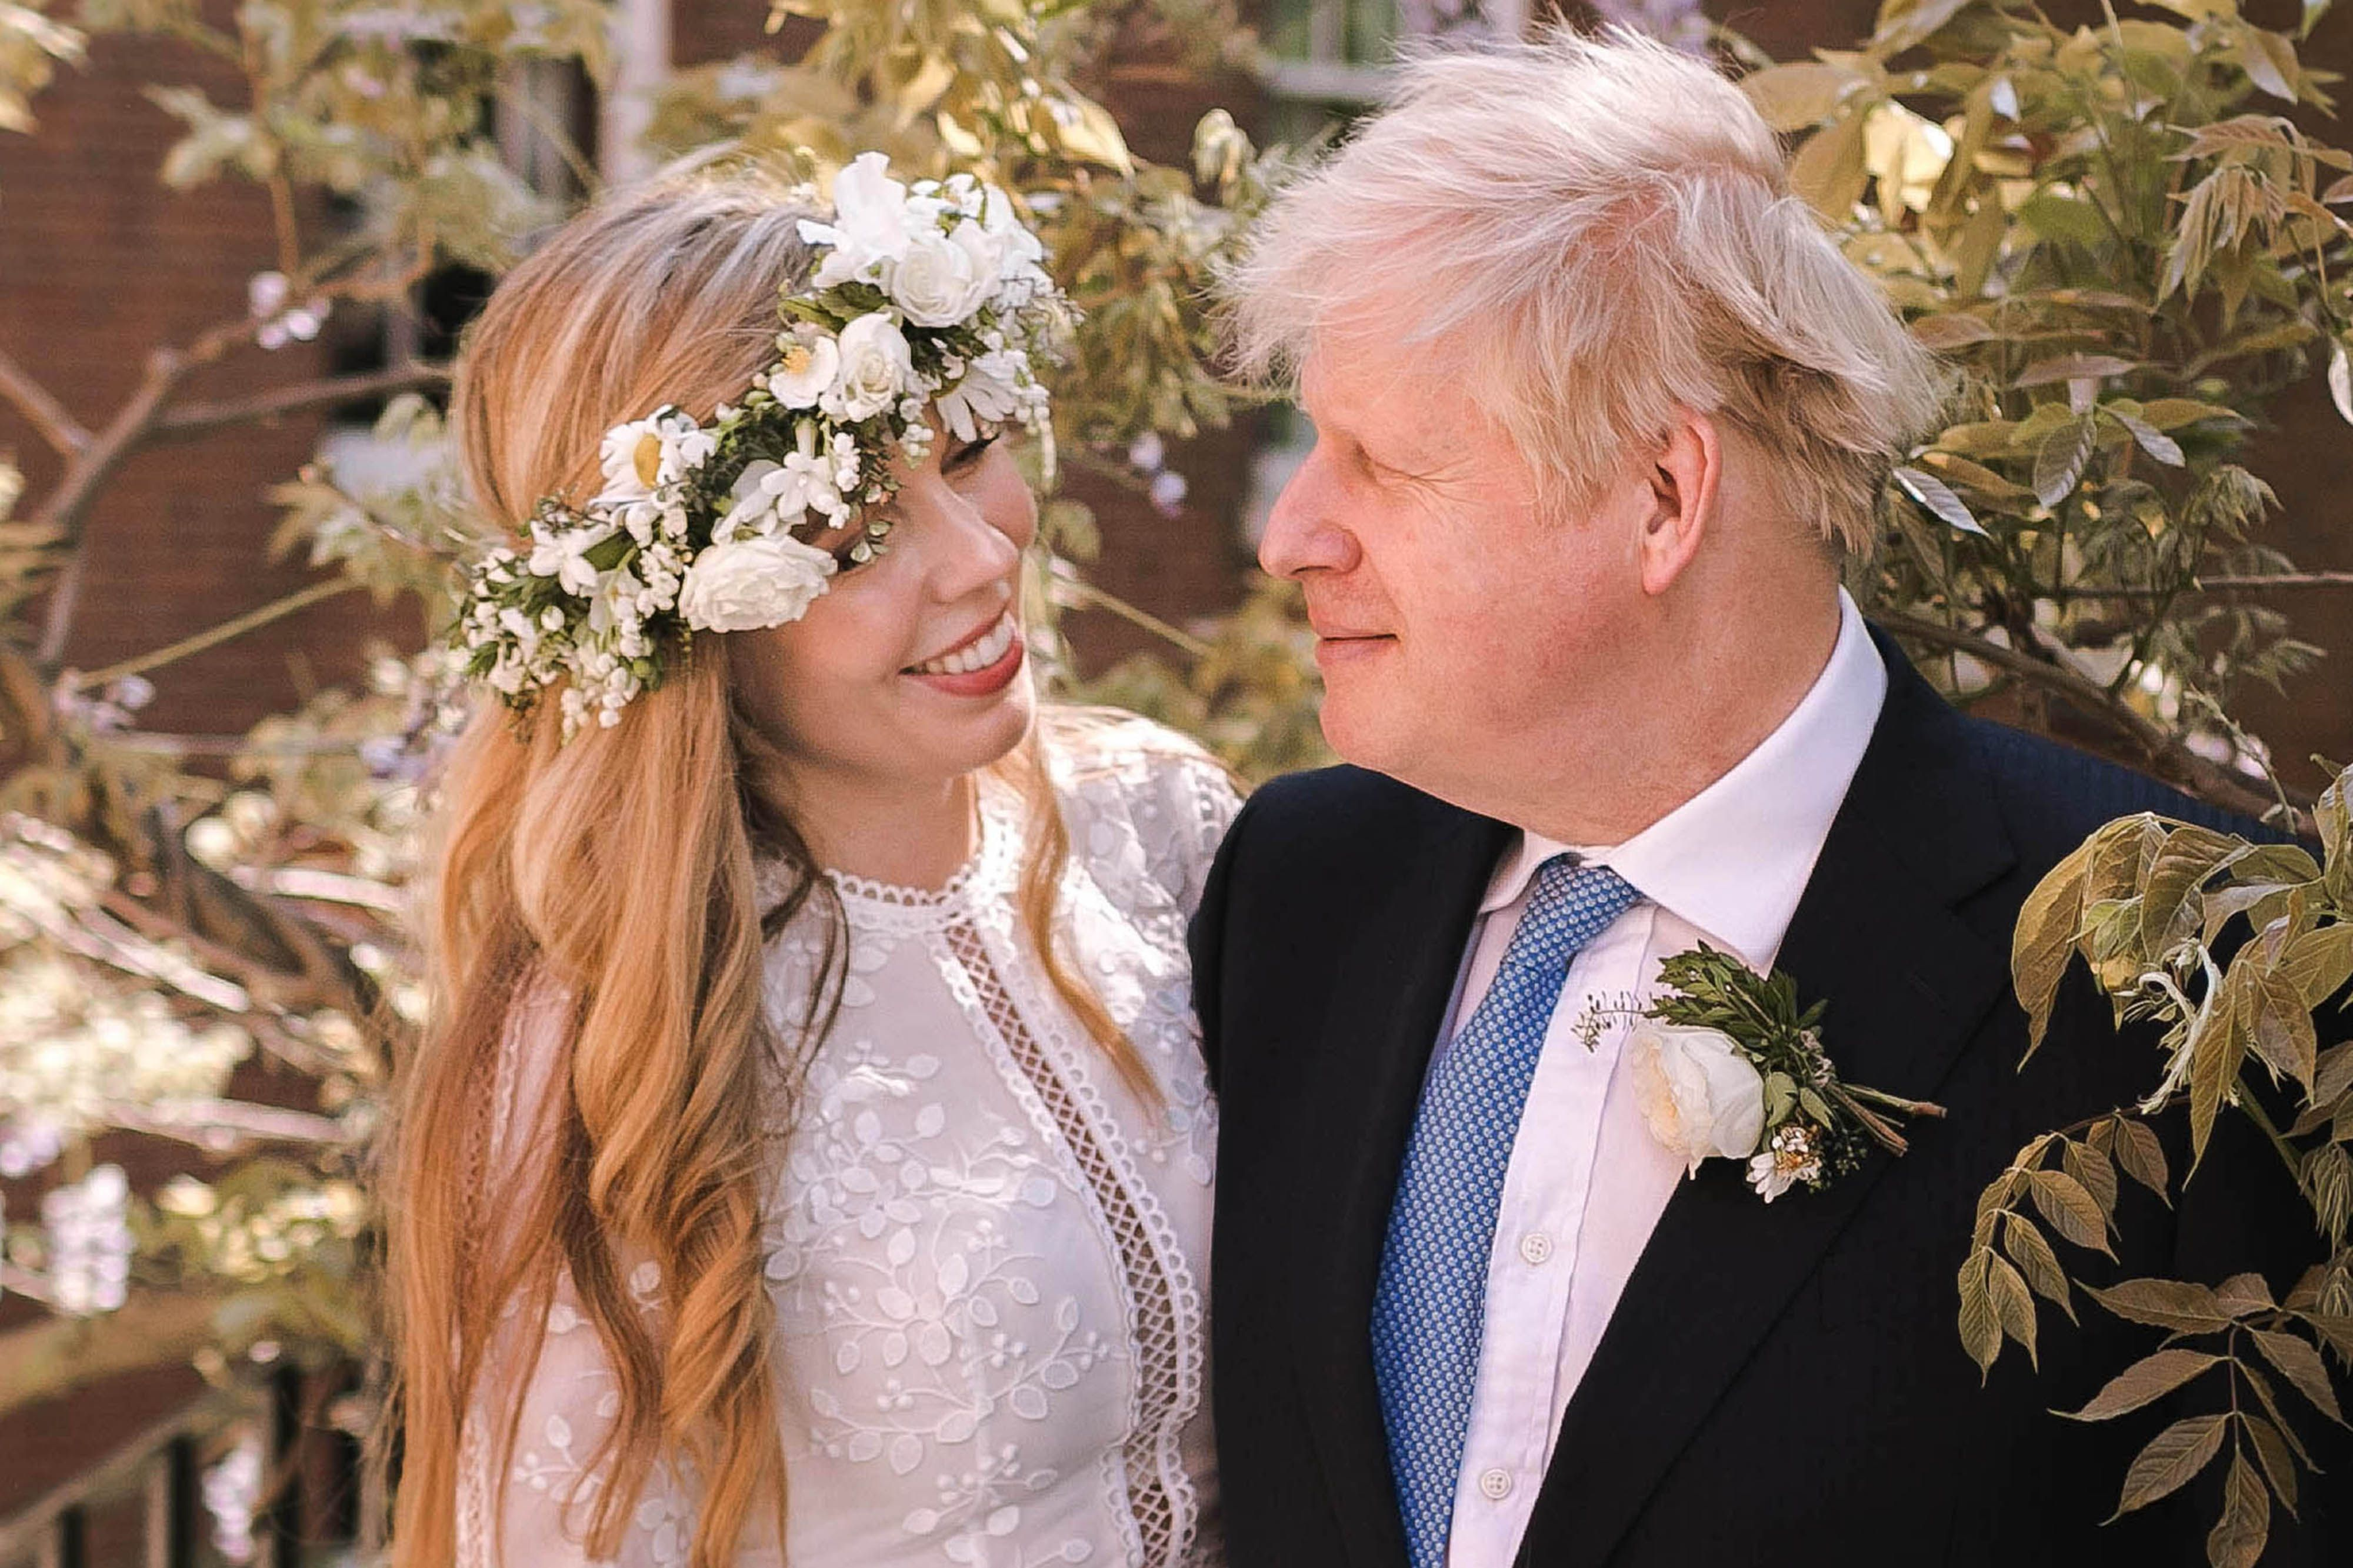 Boris and Carrie Johnson's son Wilfred looks so grown up in new pictures